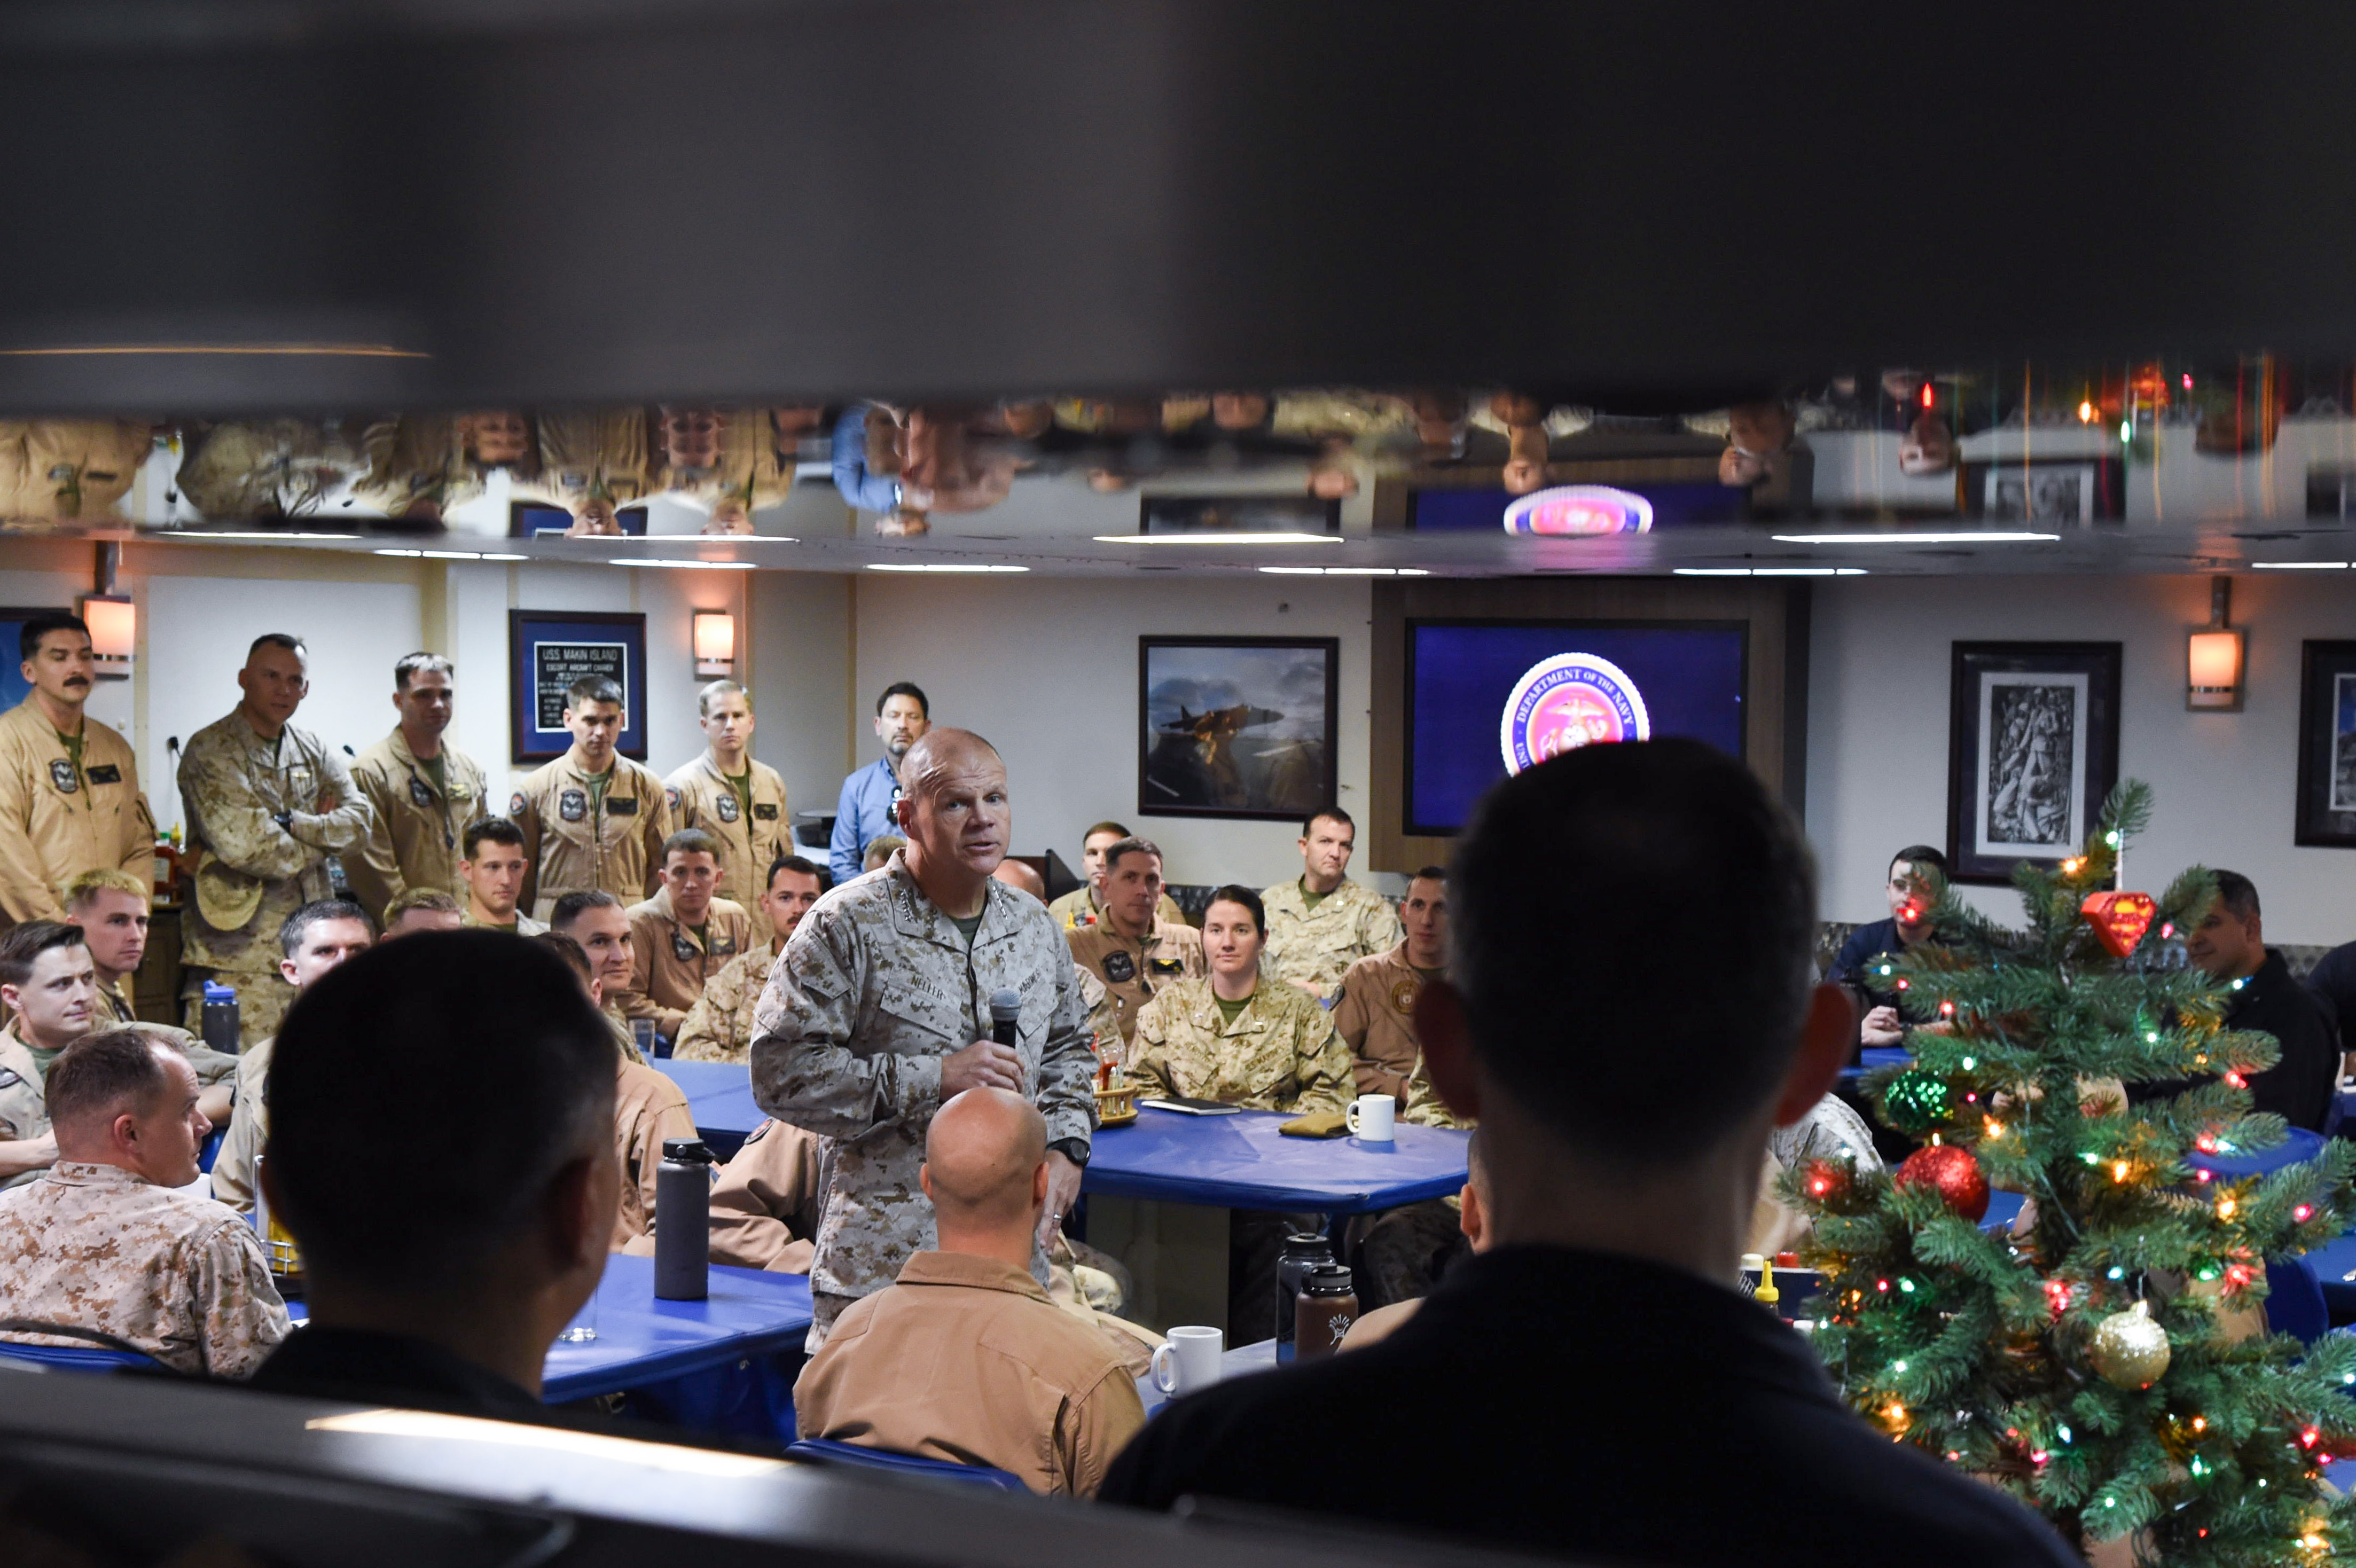 U.S. Marine Corps Gen. Robert B. Neller, 37th Commandant of the Marine Corps, speaks to Marines with the 11th Marine Expeditionary Unit and Sailors assigned to the amphibious assault ship USS Makin Island (LHD 8), in the Gulf of Aden, Dec. 23, 2016. A MEU is a forward-deployed, flexible sea-based Marine air-ground task force ready to respond to crisis and conduct limited contingency operations. (U.S. Air National Guard photo by Staff Sgt. Penny Snoozy)